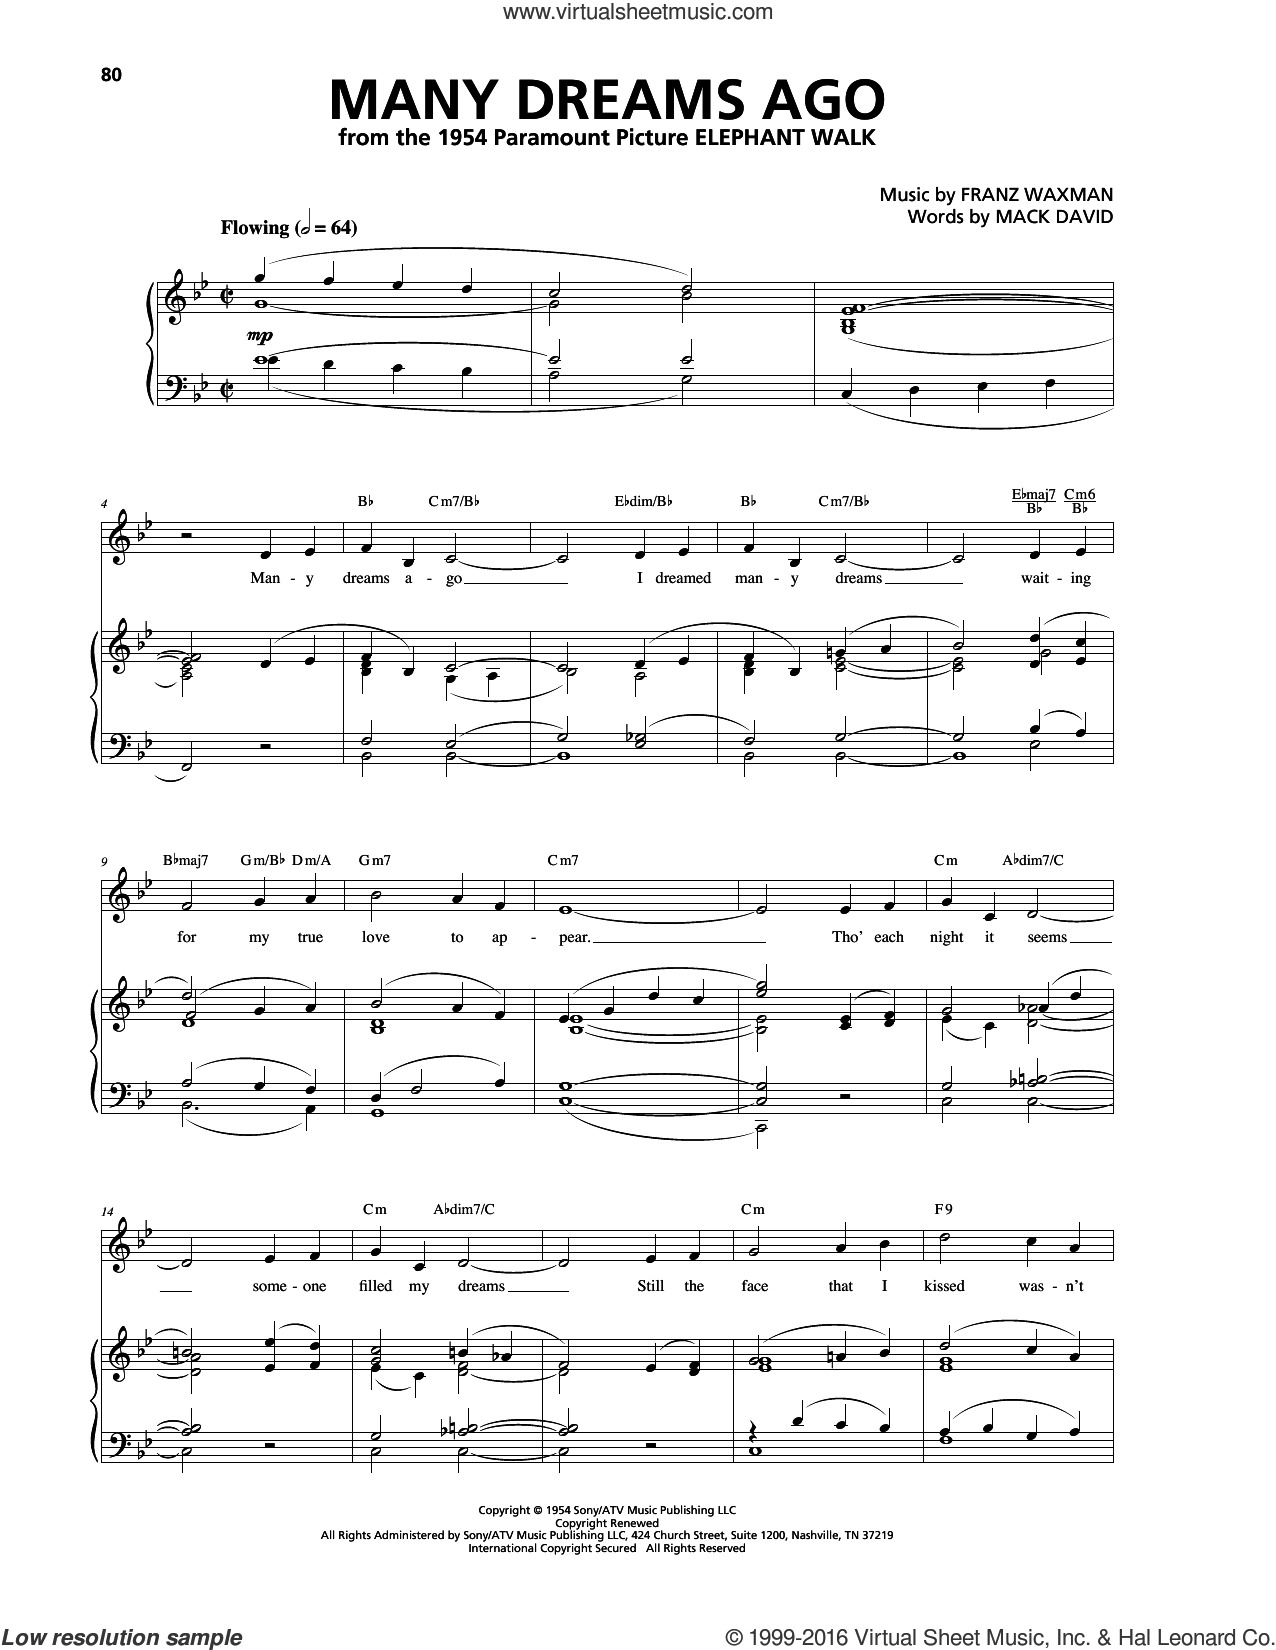 Many Dreams Ago sheet music for voice, piano or guitar by Franz Waxman and Mack David. Score Image Preview.